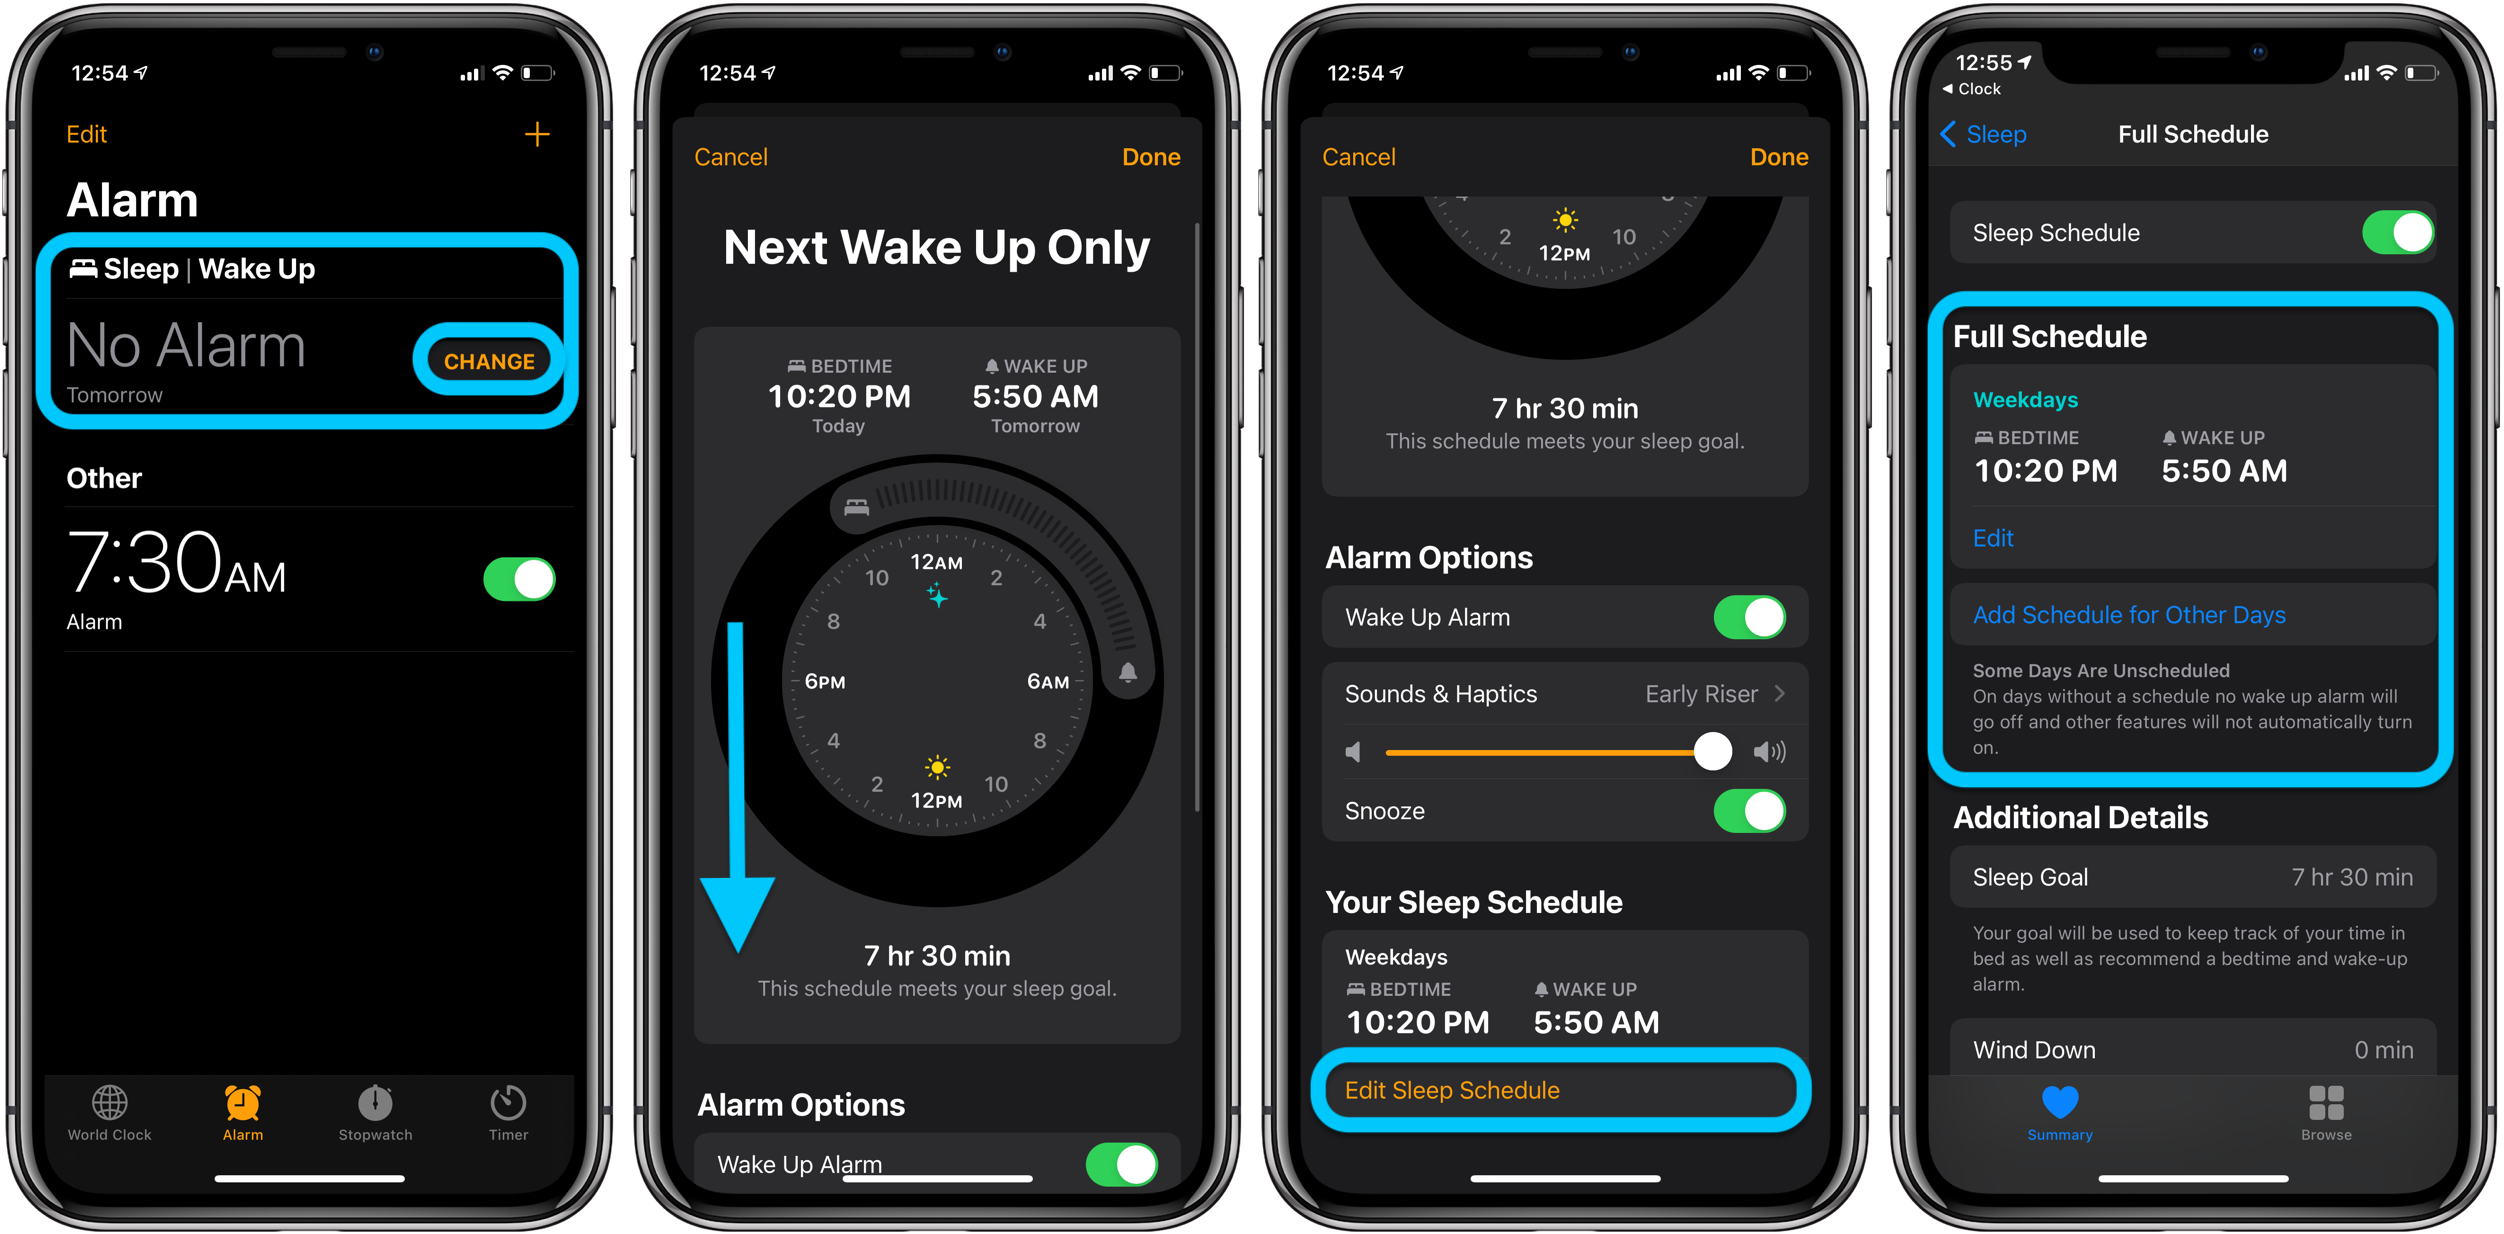 How to use new iPhone alarms in iOS 14 walkthrough 2